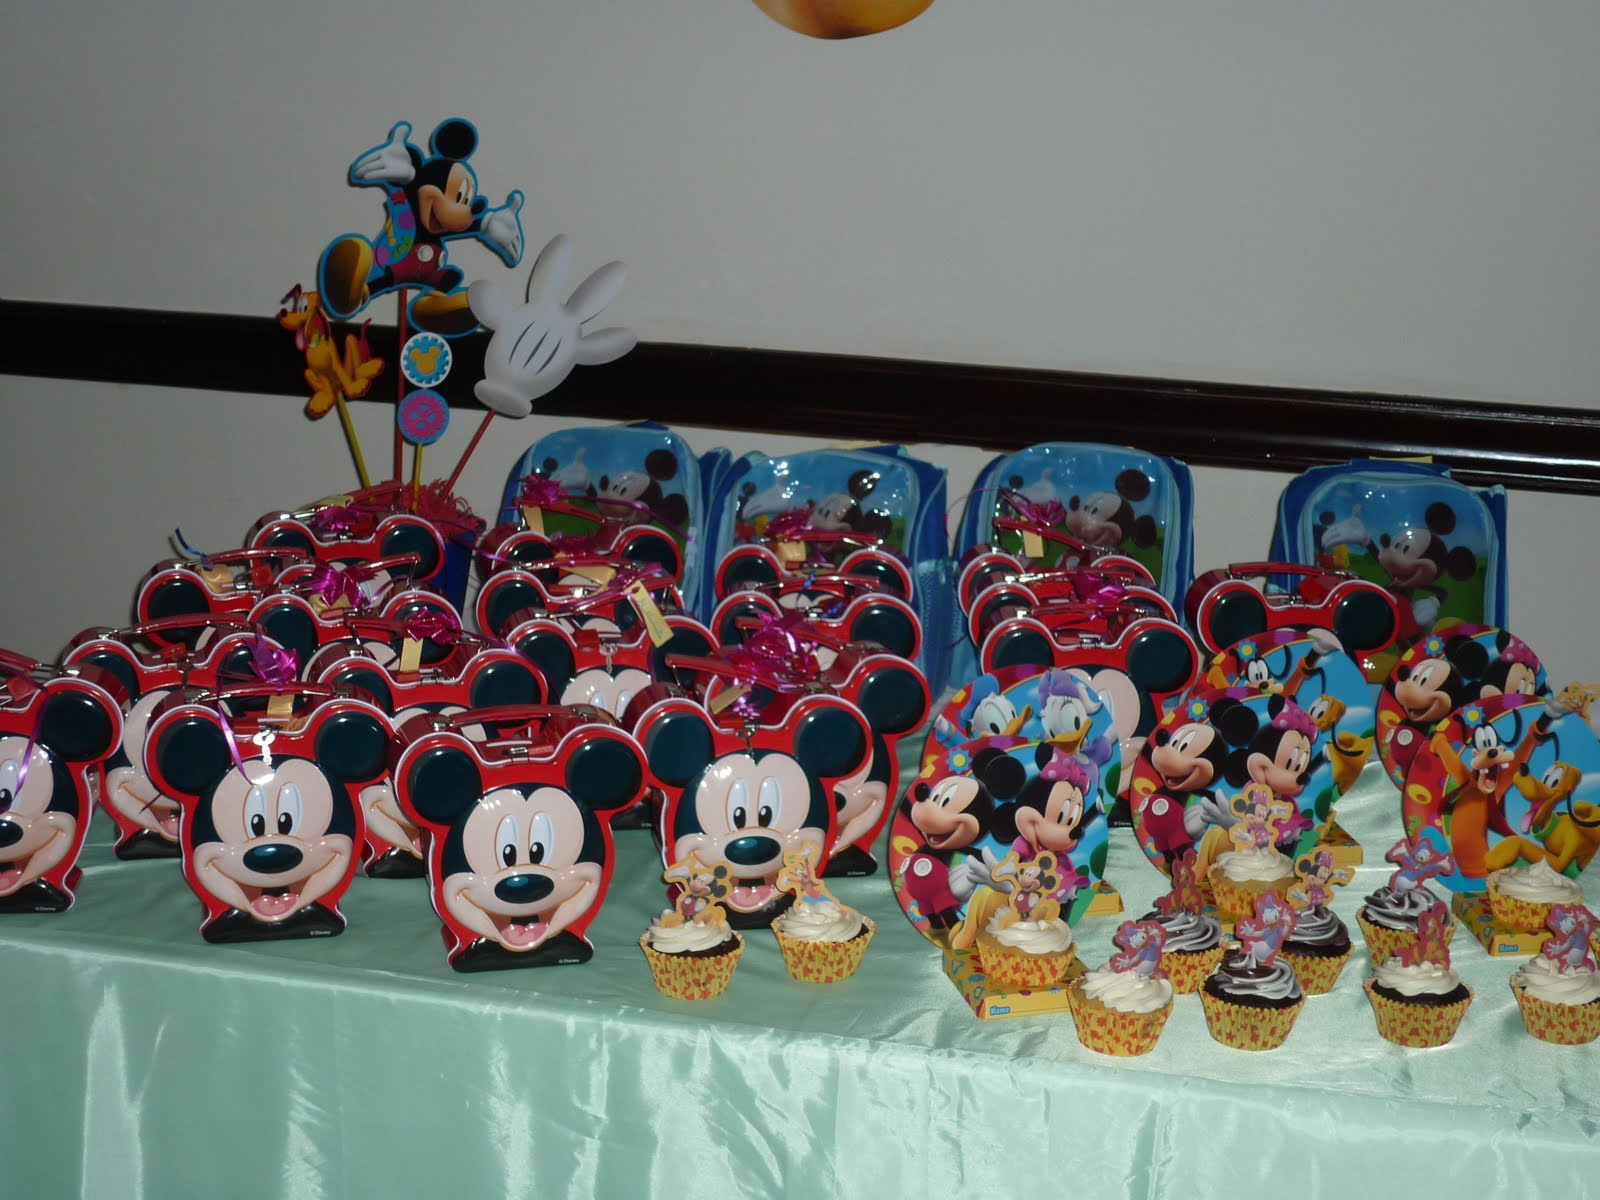 Galer Fotos Genes Decoracion Foamy Mickey Mouse